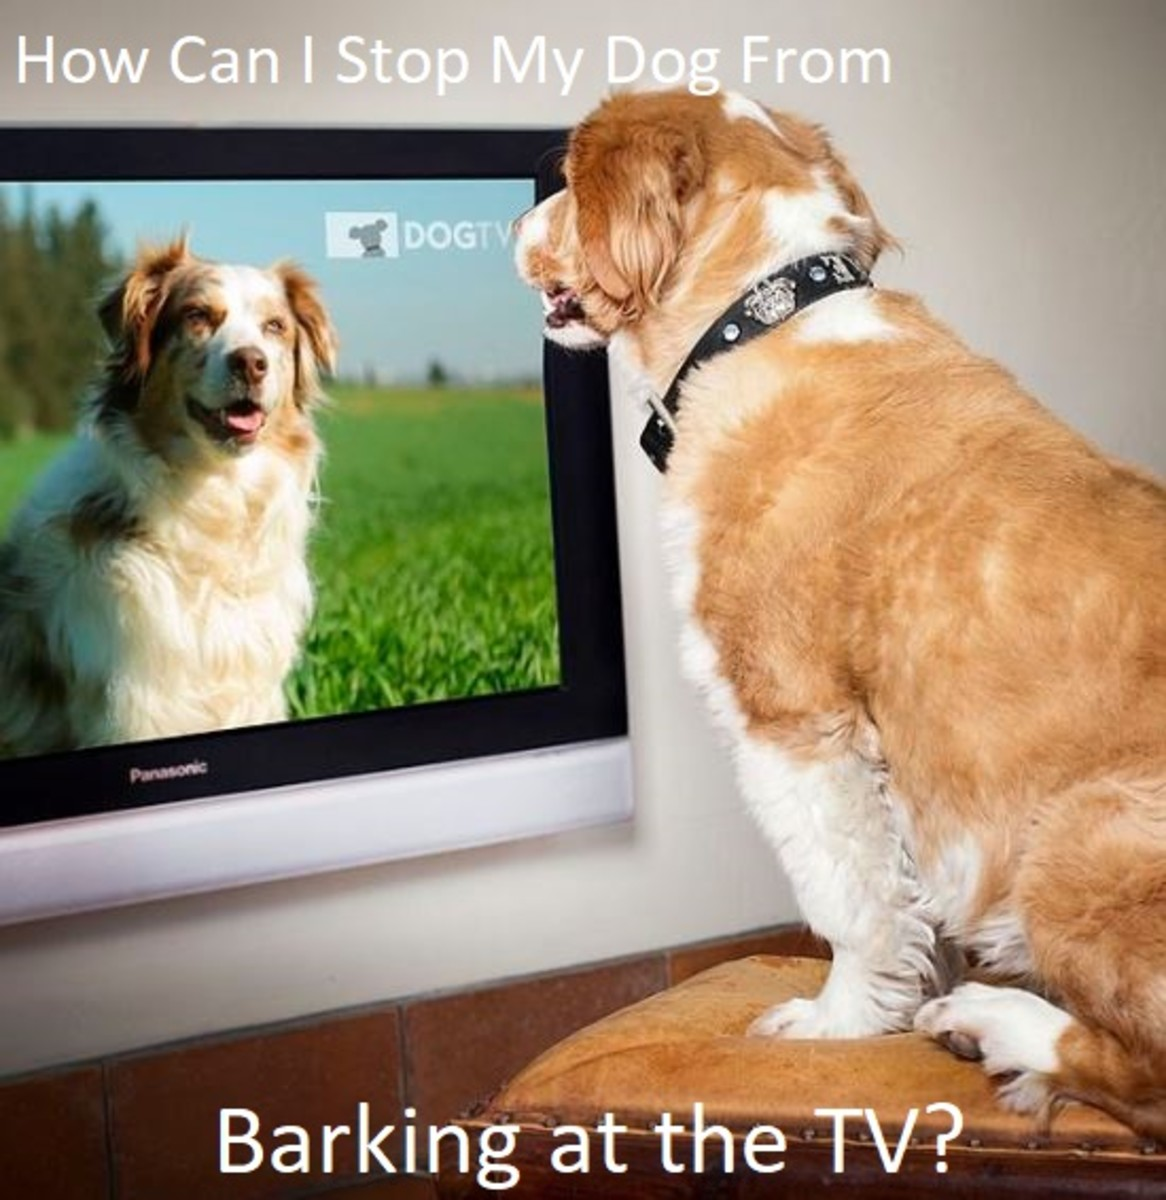 Stop Your Dog From Barking at the TV With This Powerful Technique